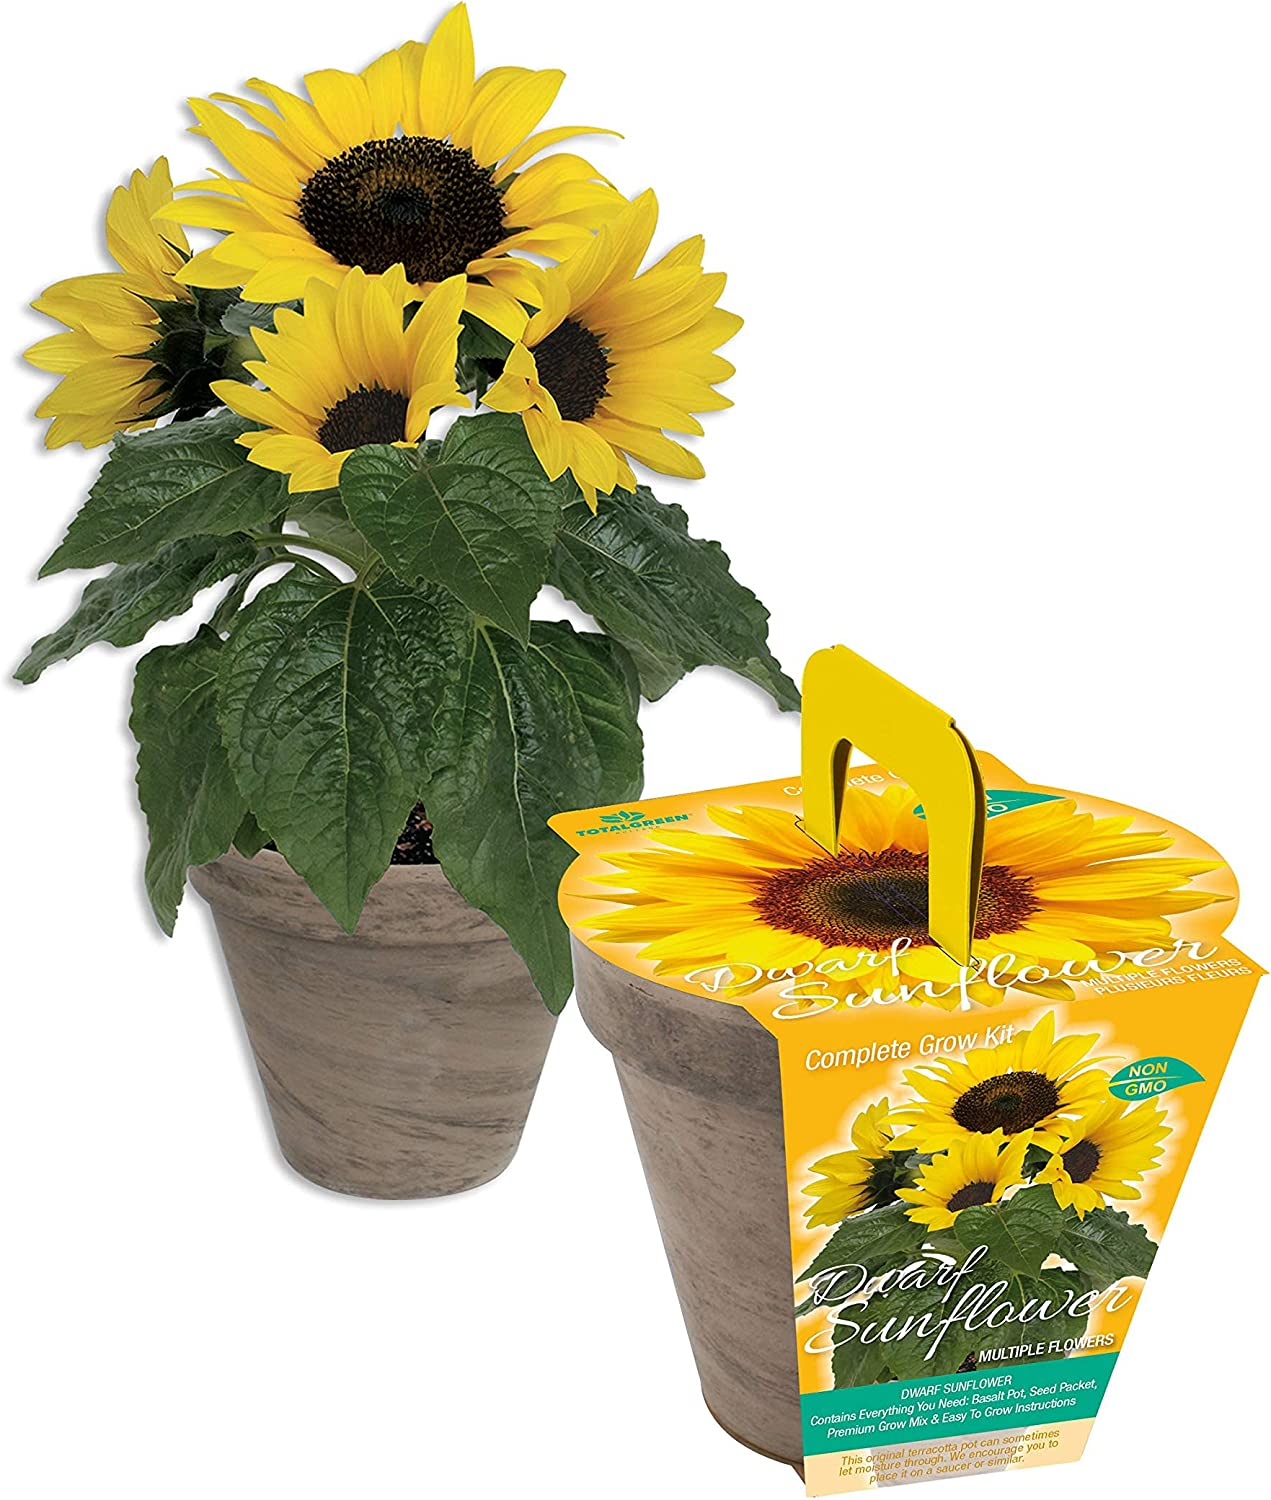 Dwarf Sunflower Mothers Day Grow Kit   Grow Your own Dwarf Sunflower in just Weeks   Unique Basalt Pot, Soil Disk and Sunflower Seeds (Dwarf Sunflower Variety) TotalGreen Product